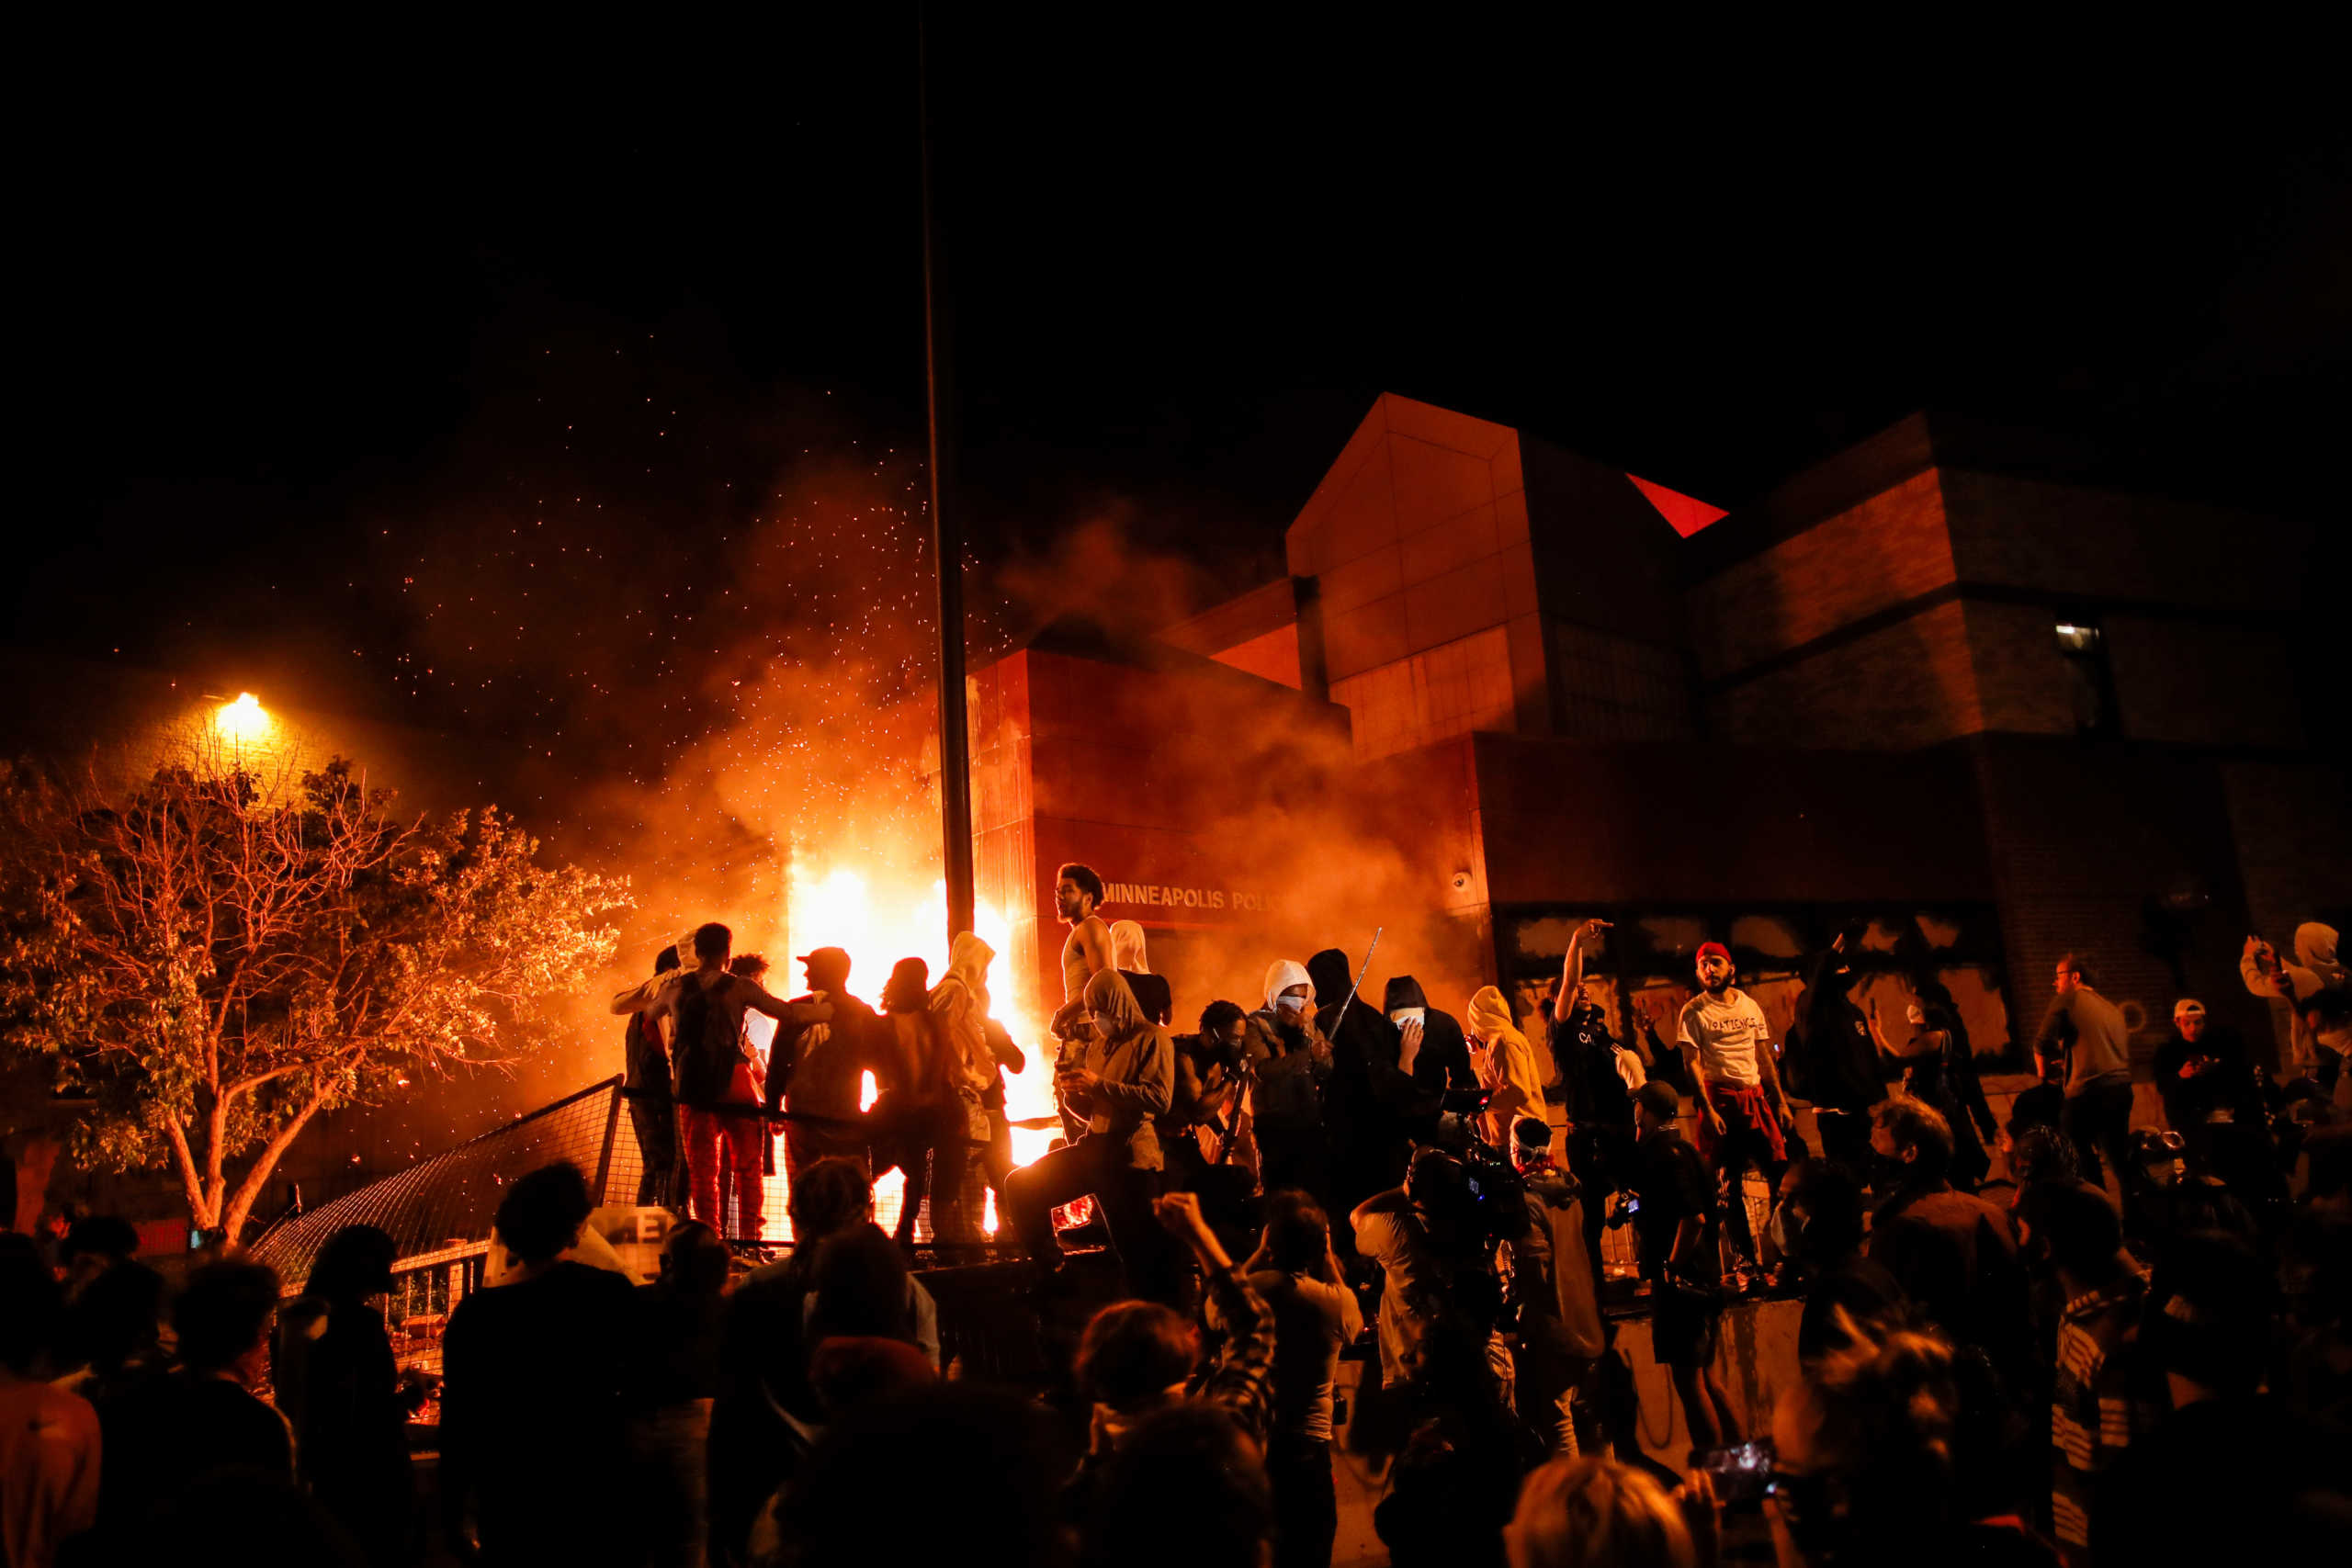 Protesters gather around after setting fire to the entrance of a police station as demonstrations continue after a white police officer was caught on a bystander's video pressing his knee into the neck of African-American man George Floyd, who later died at a hospital, in Minneapolis, Minnesota, U.S., May 28, 2020. REUTERS/Carlos Barria